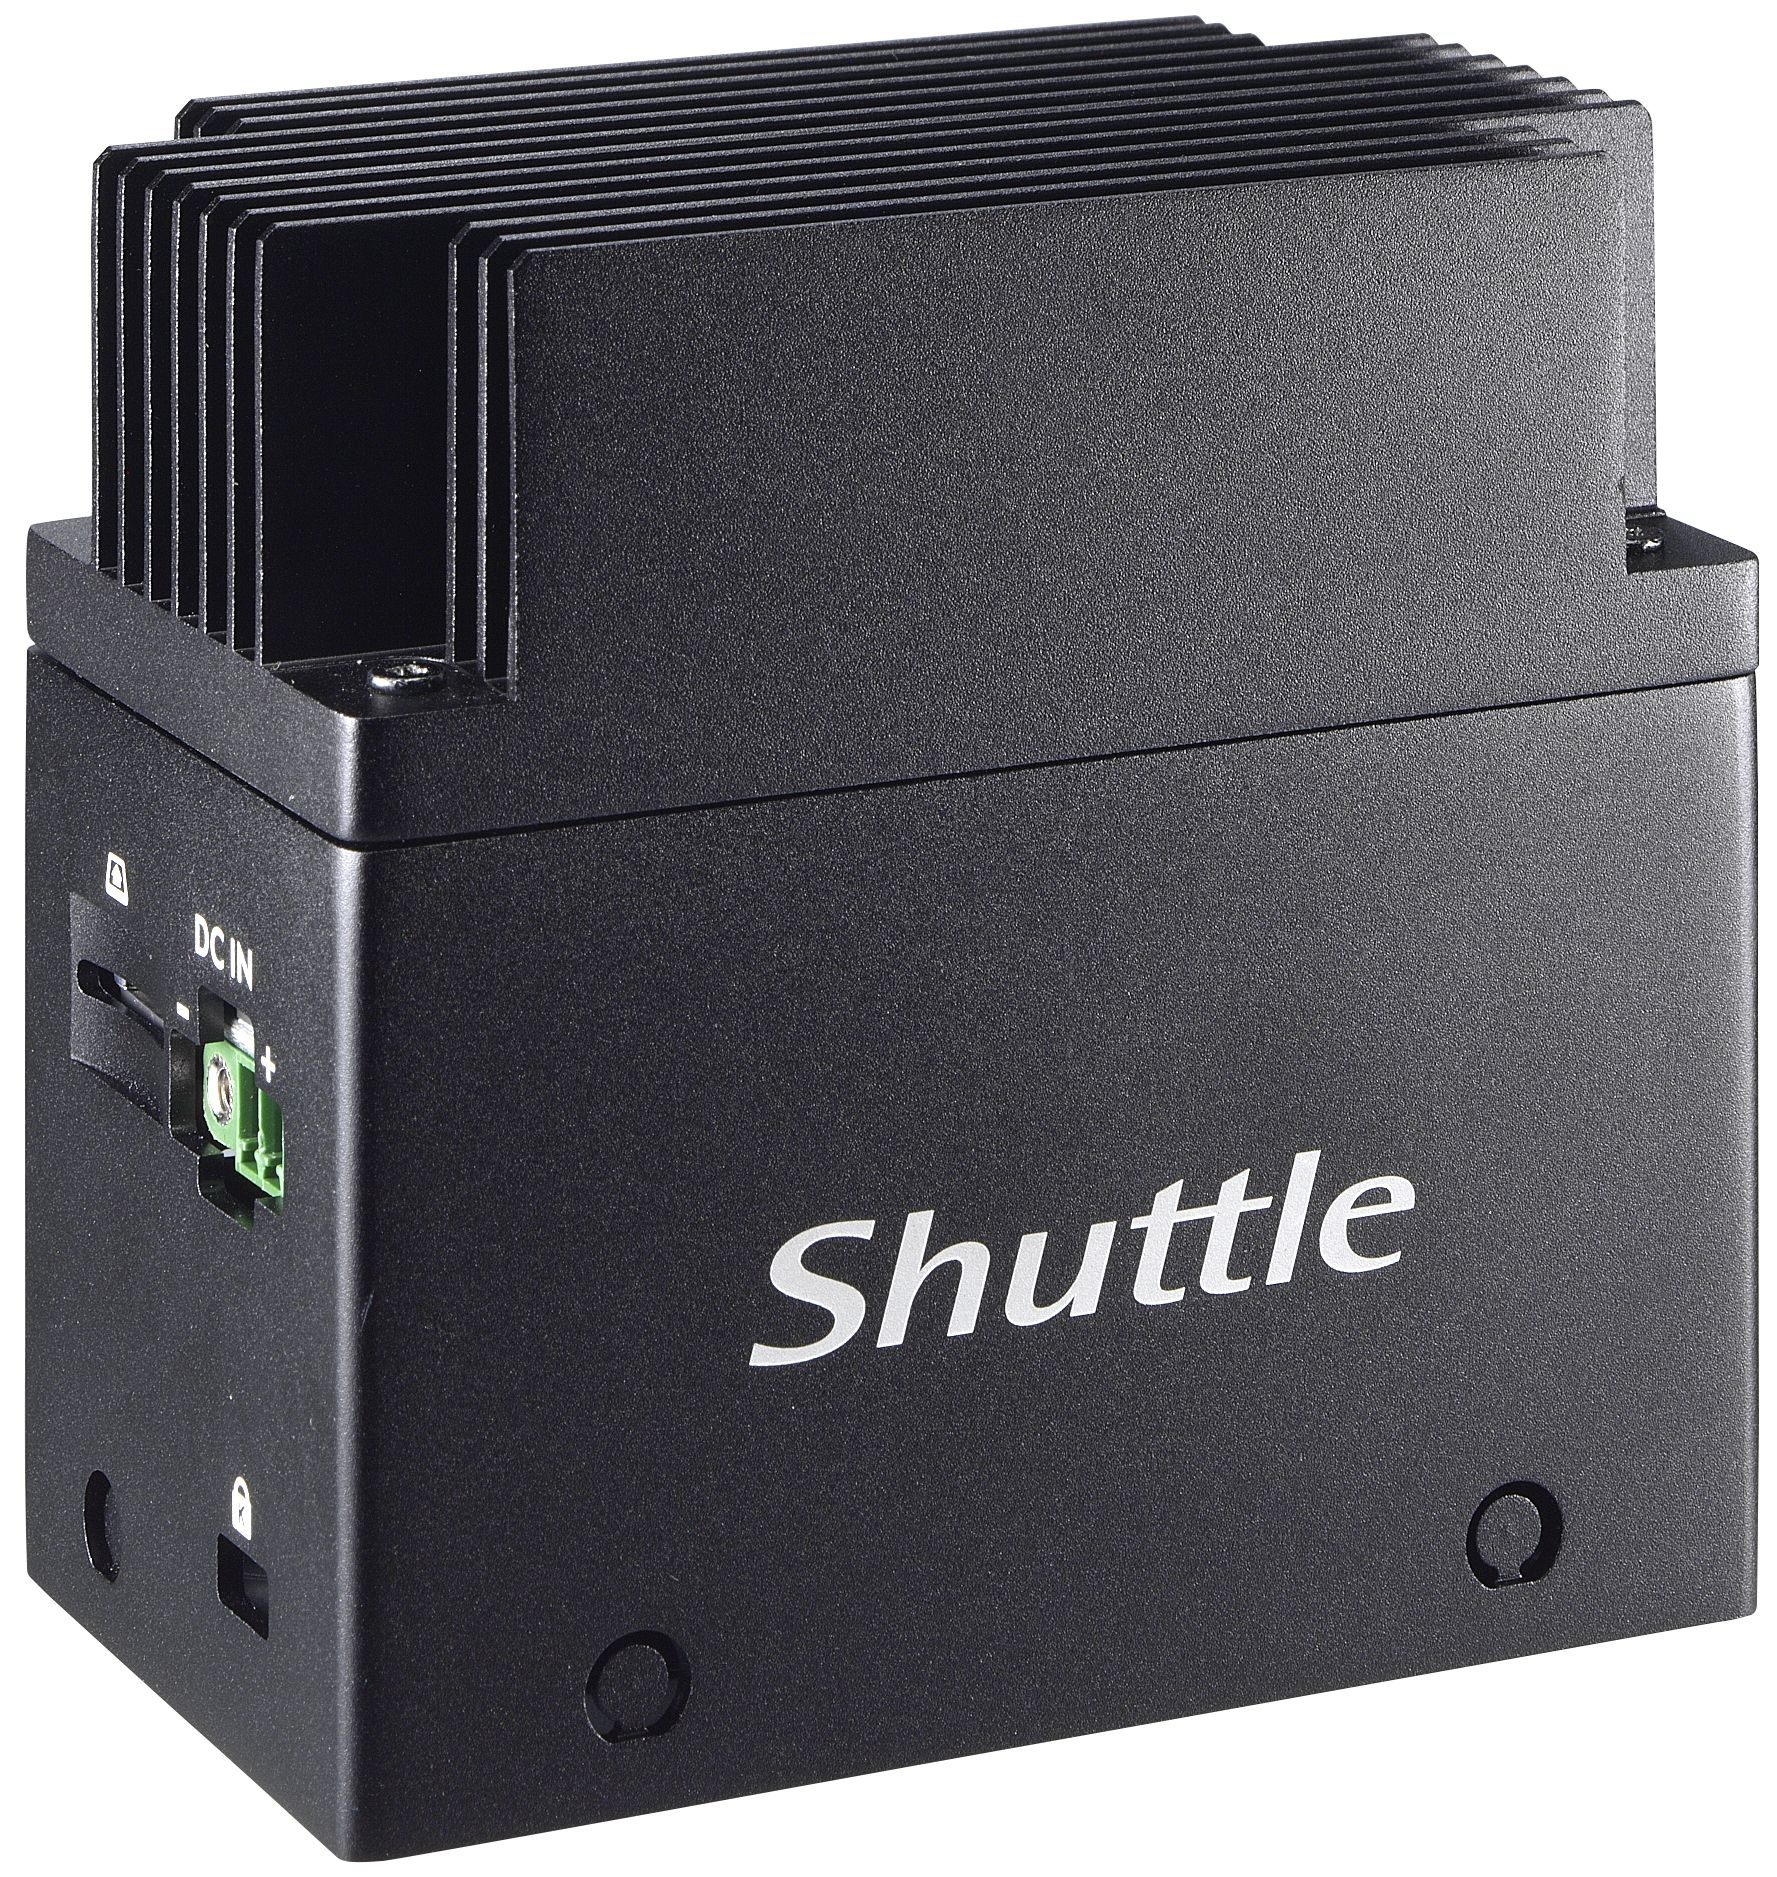 Shuttle EDGE EN01J4 J4205 Intel® Pentium® 8 GB LPDDR4-SDRAM 64 GB eMMC Mini PC Black